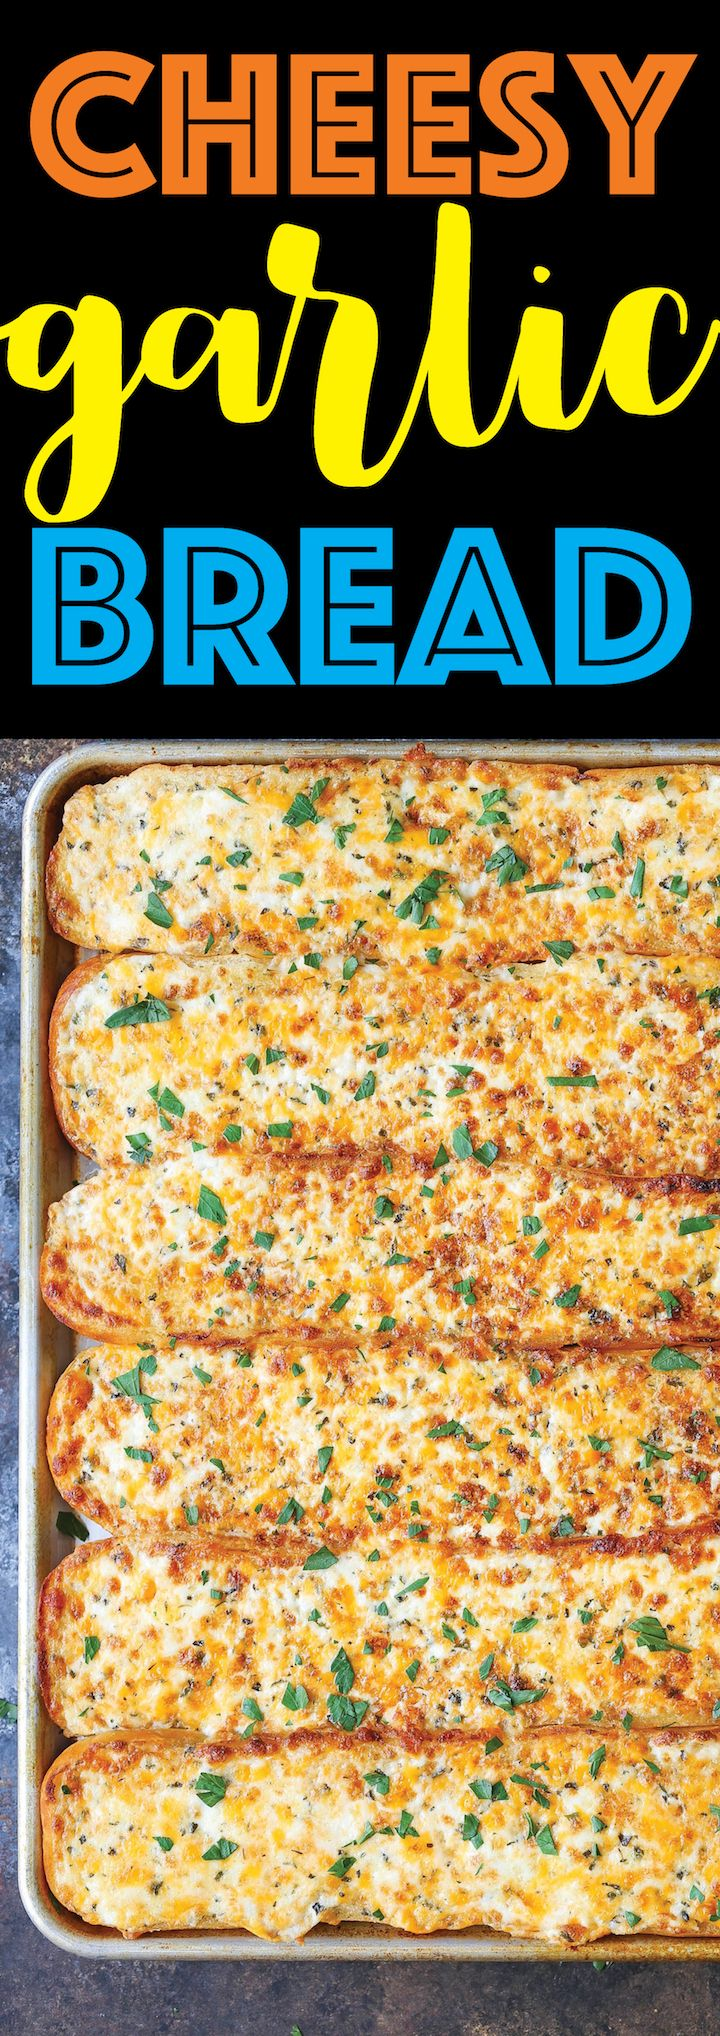 Cheesy Garlic Bread - One bite of this and everyone will beg you to make this again and again! So cheesy, so ooey gooey and so melt-in-your-mouth AH-MAZING! #BakedProud #ad